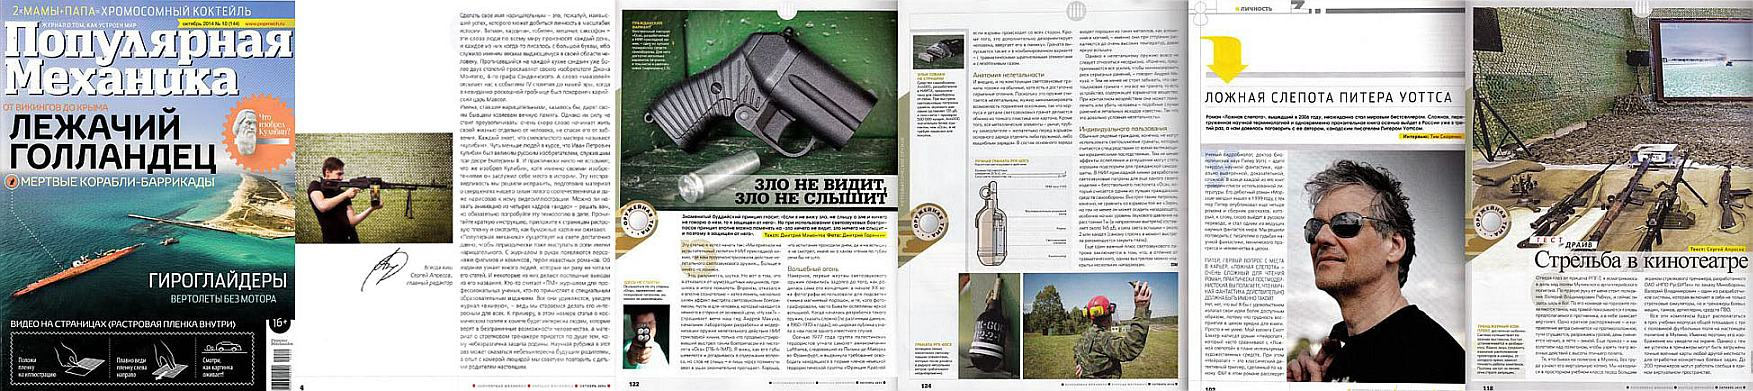 One of these things is not like the others.  The Russian Popular Mechanics has a different emphasis than what I was expecting. Why, it's almost like the American Popular Mechanics...